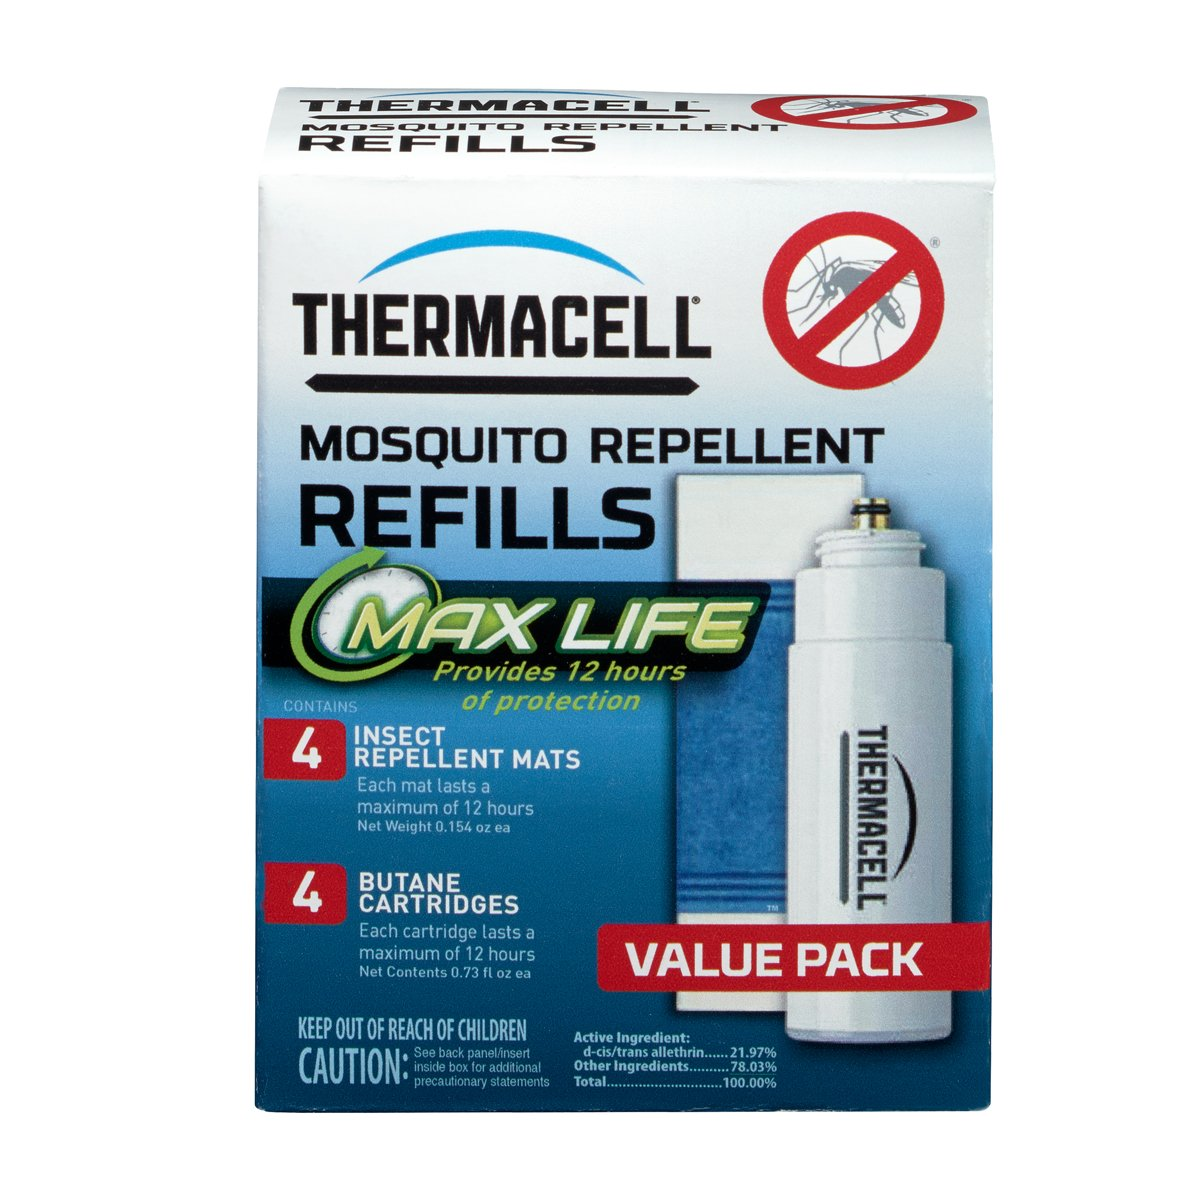 Thermacell L-4 Max Life Mosquito Repeller Refill, 48 Hour Pack (4 Max Life 12-Hour Repellent Mats and 4 Fuel Cartridges)